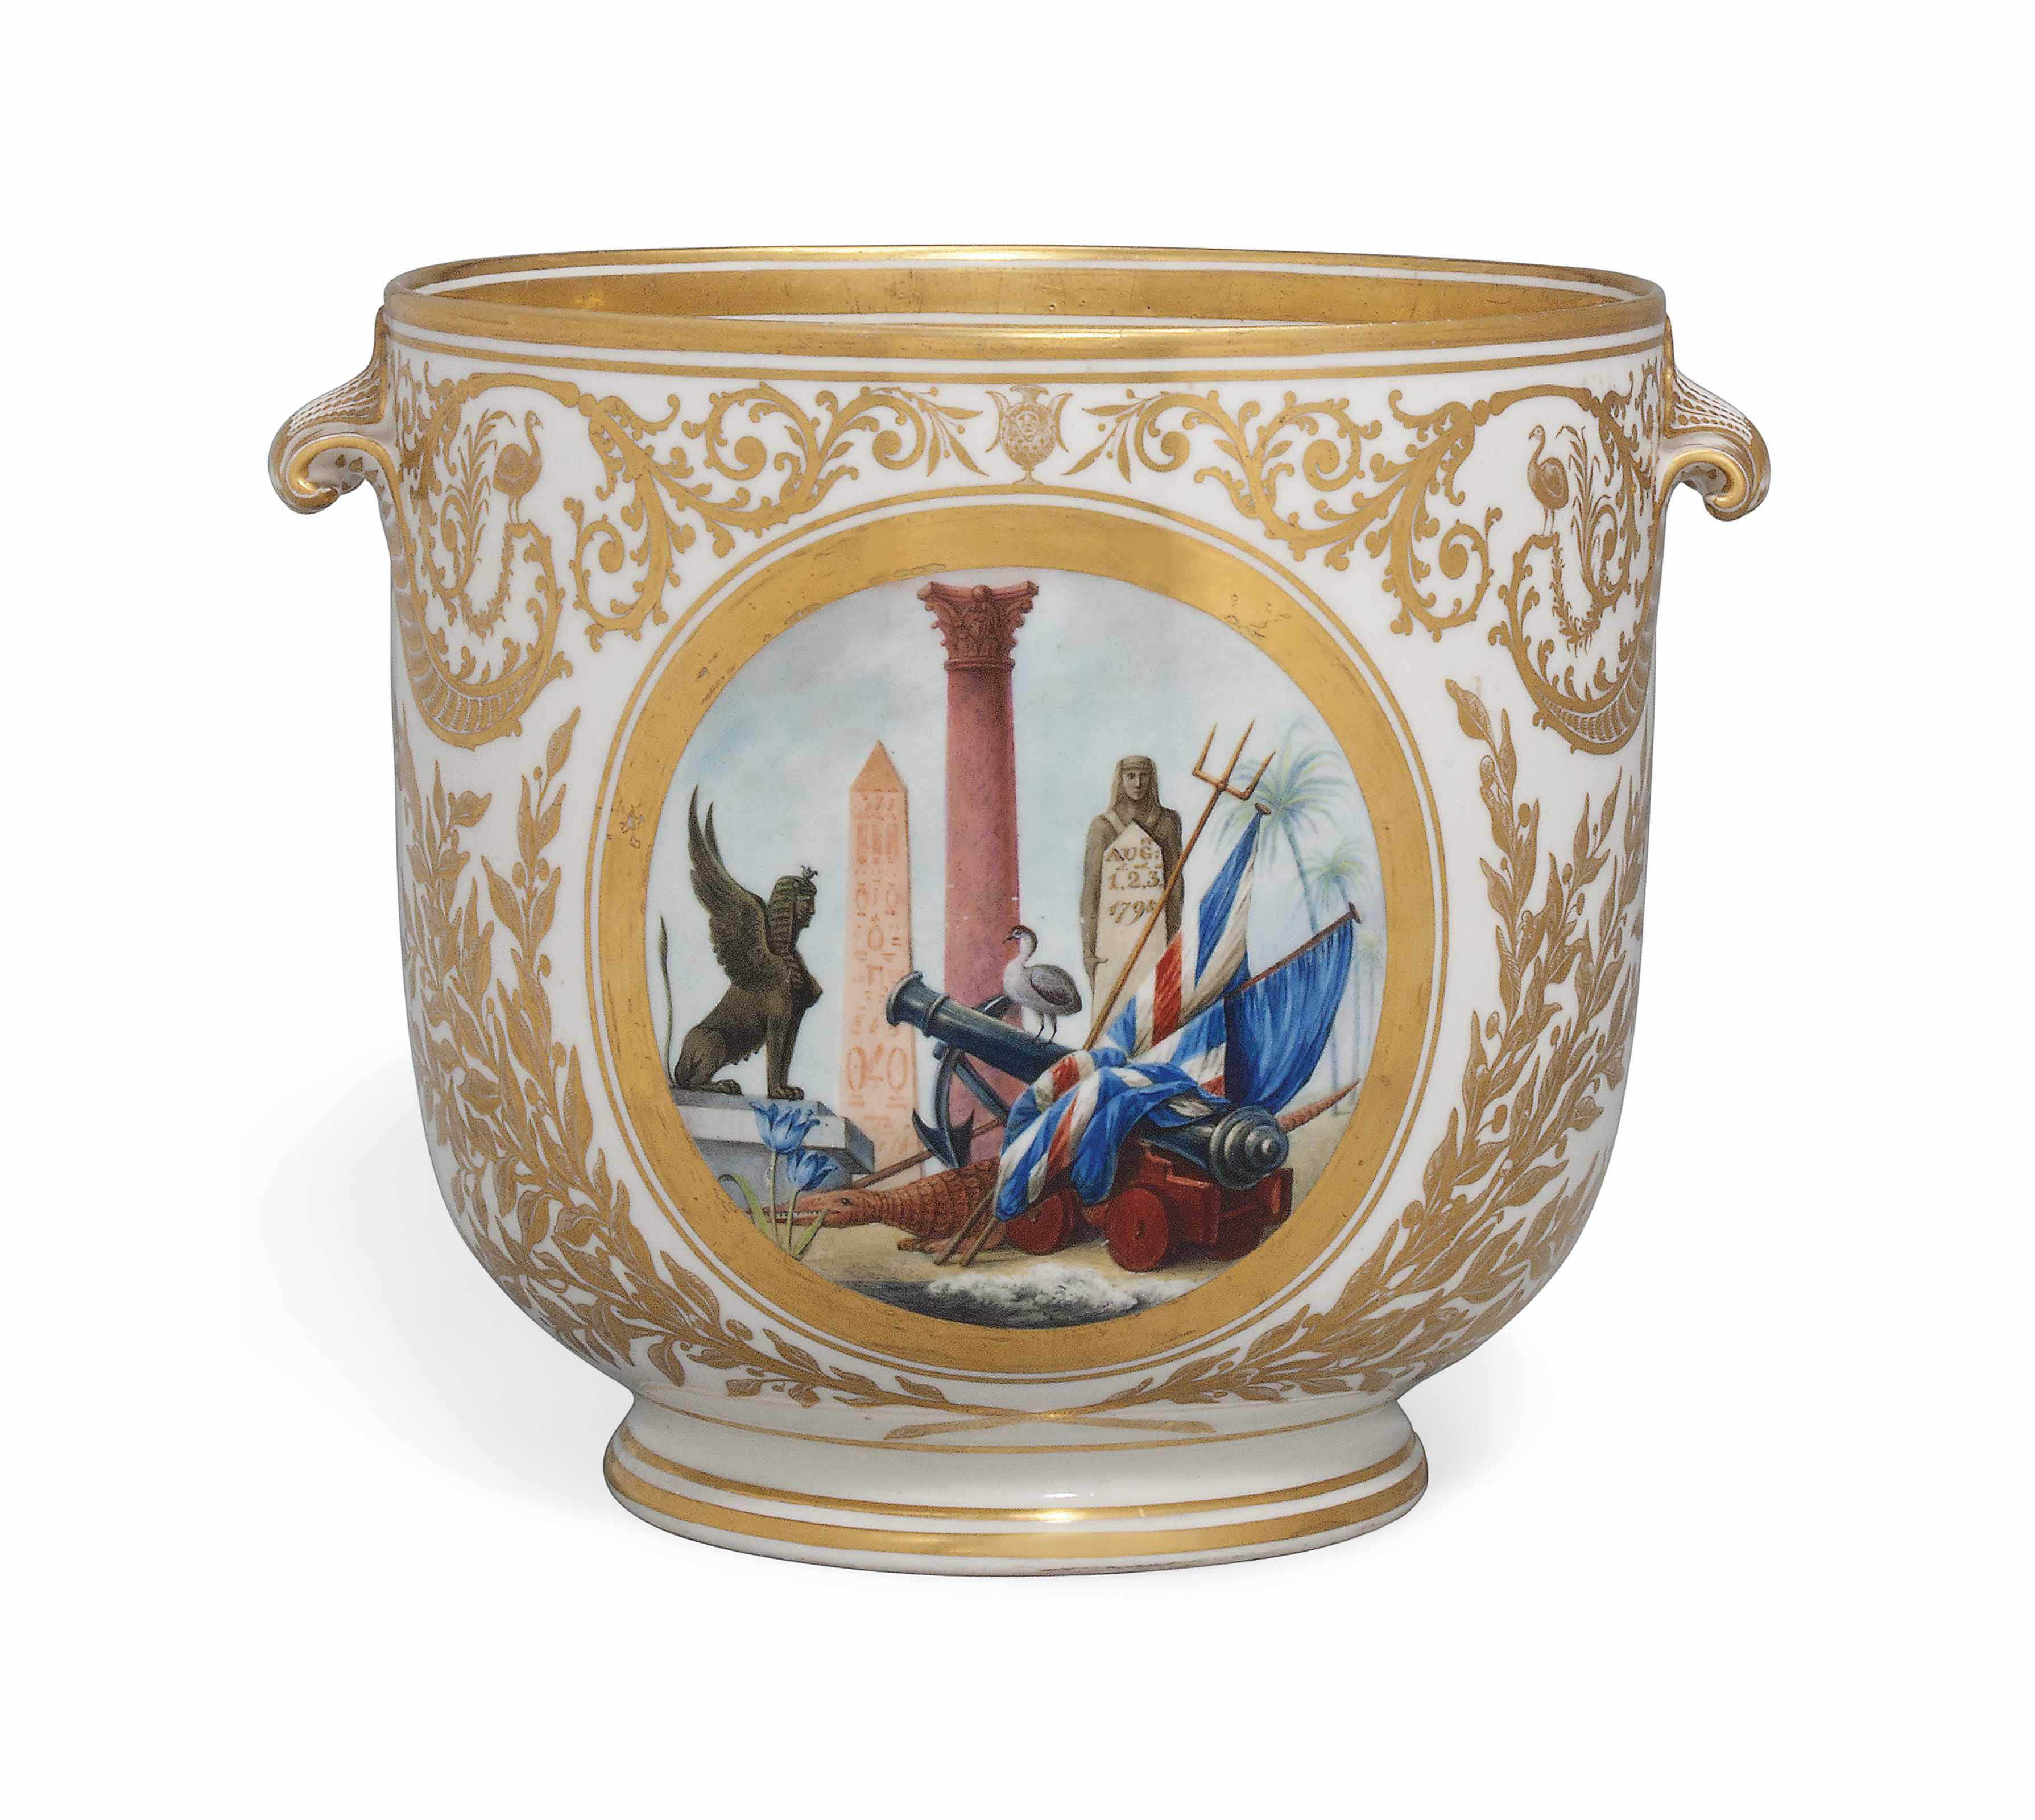 A DERBY BOTTLE-COOLER COMMEMORATING ADMIRAL LORD NELSON'S VICTORY AT THE BATTLE OF THE NILE